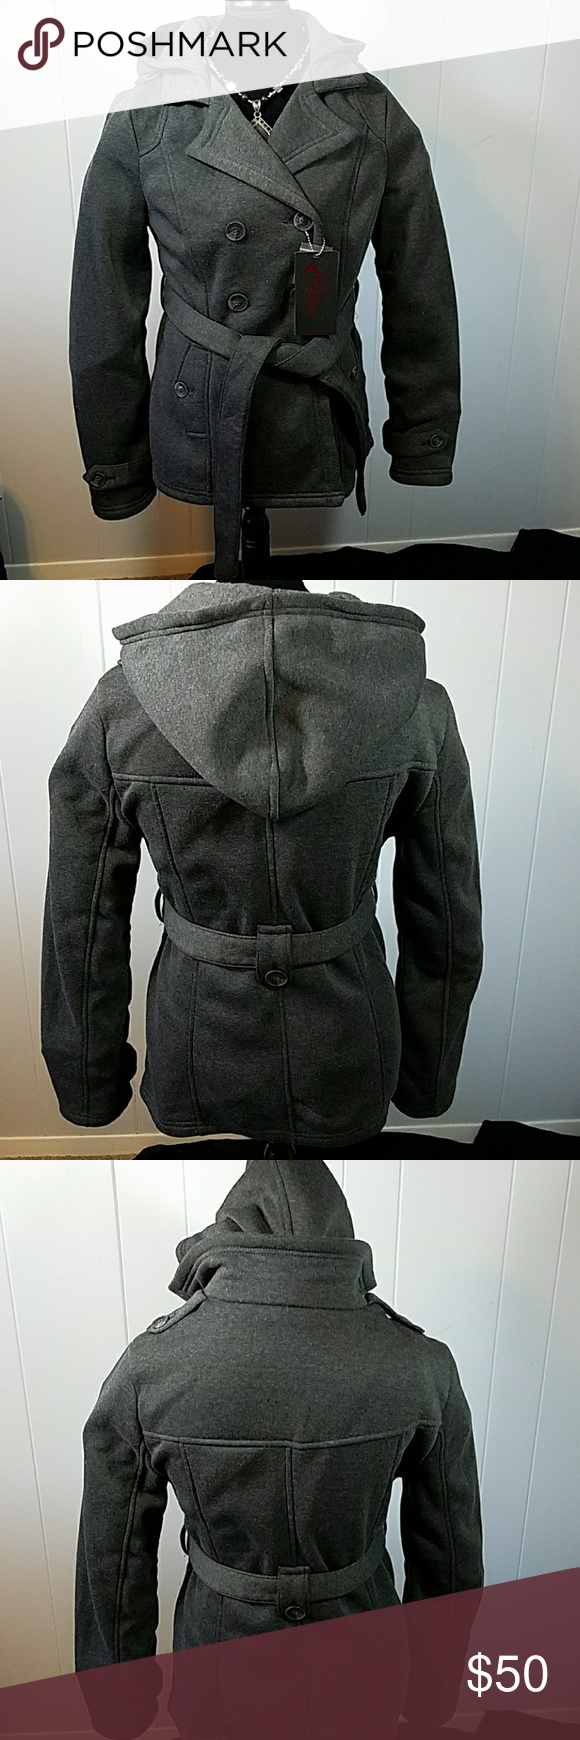 Darling New York Yoki Outerwear Collection Coat Super Cute New York Yoki Outerwear Collection Double Breasted Ho Charcoal Jacket Clothes Design Fashion Design [ 1740 x 580 Pixel ]